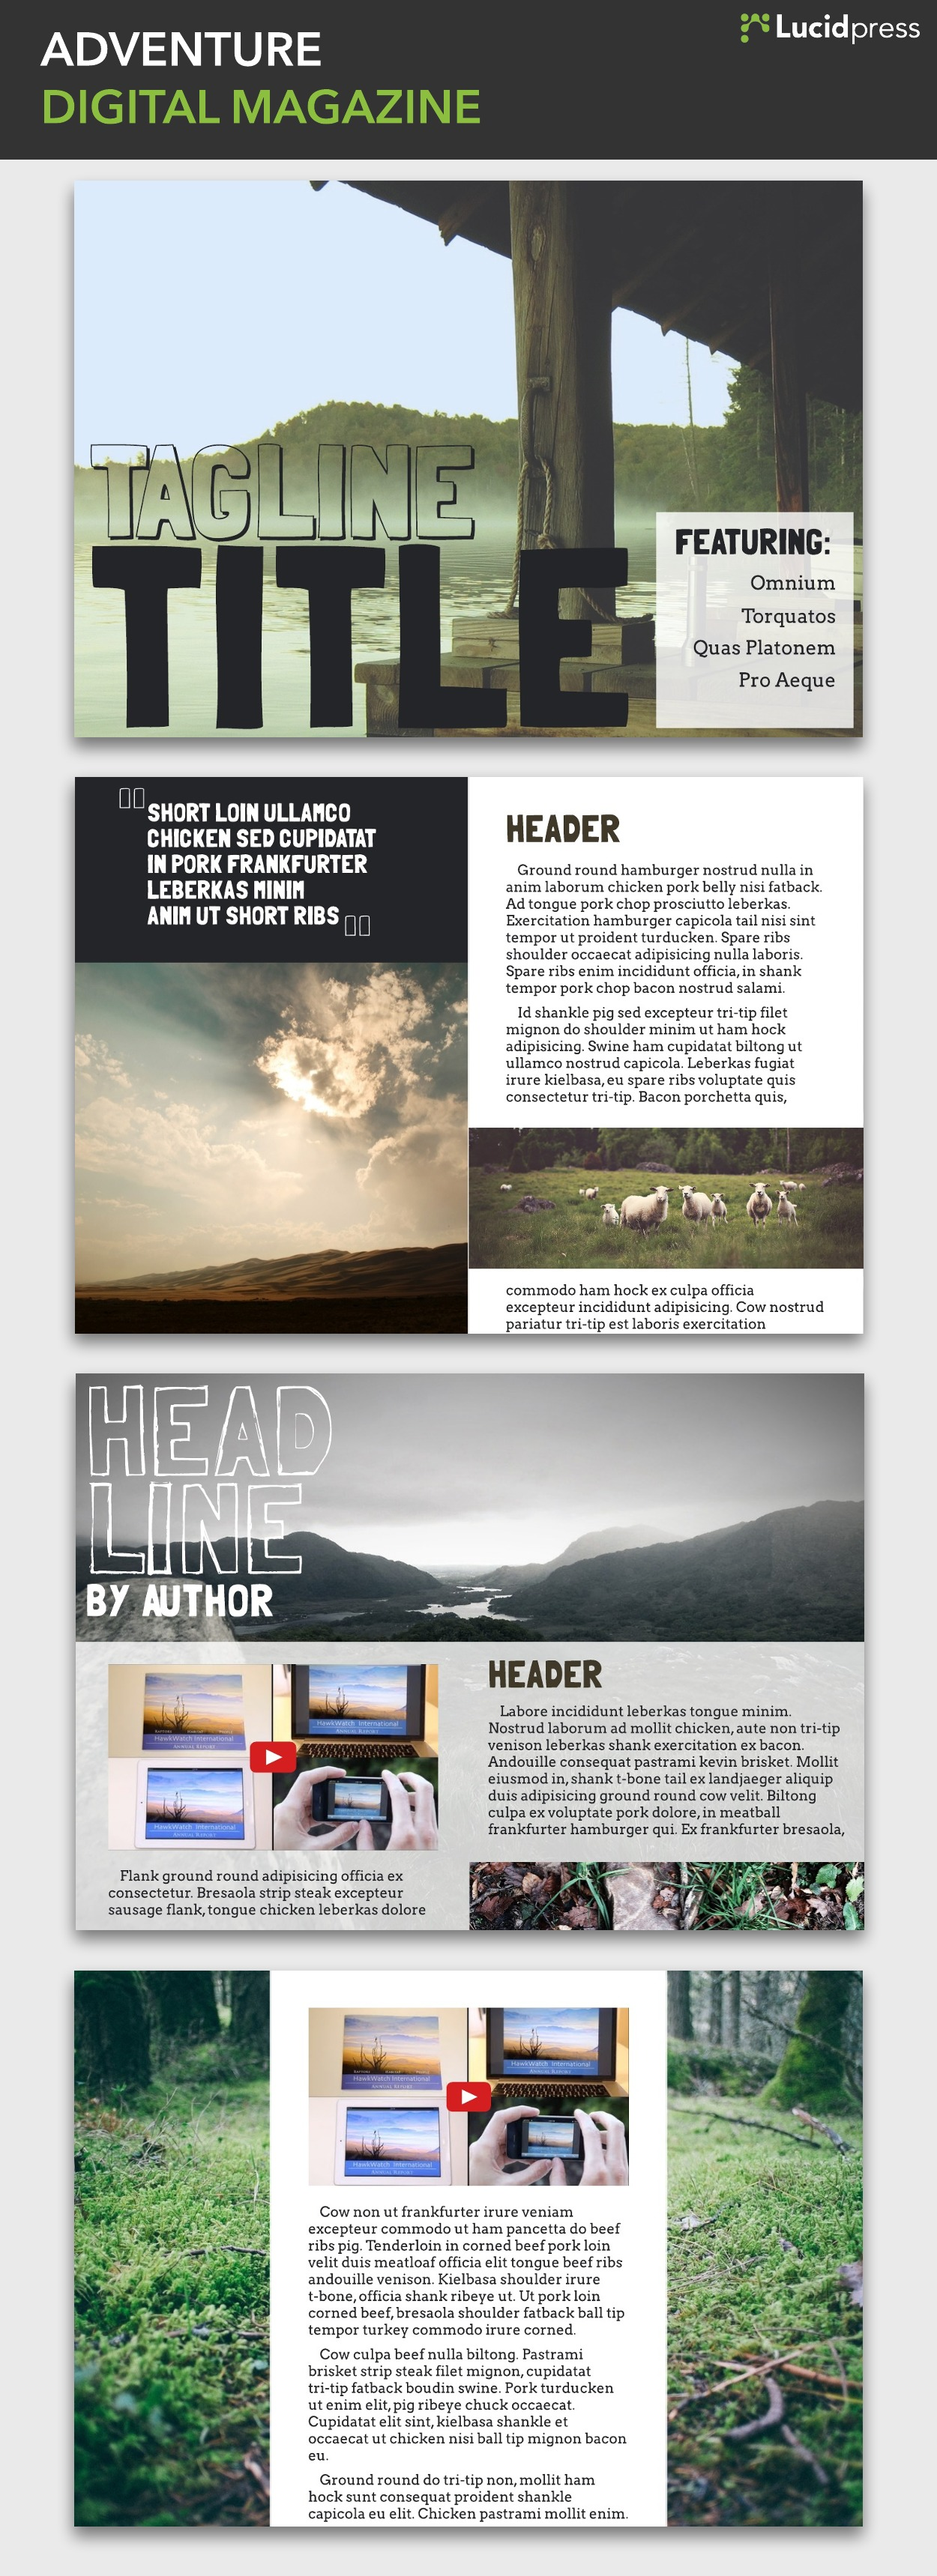 14 magazine layout design ideas for your inspirationadventure digital magazine inspiration